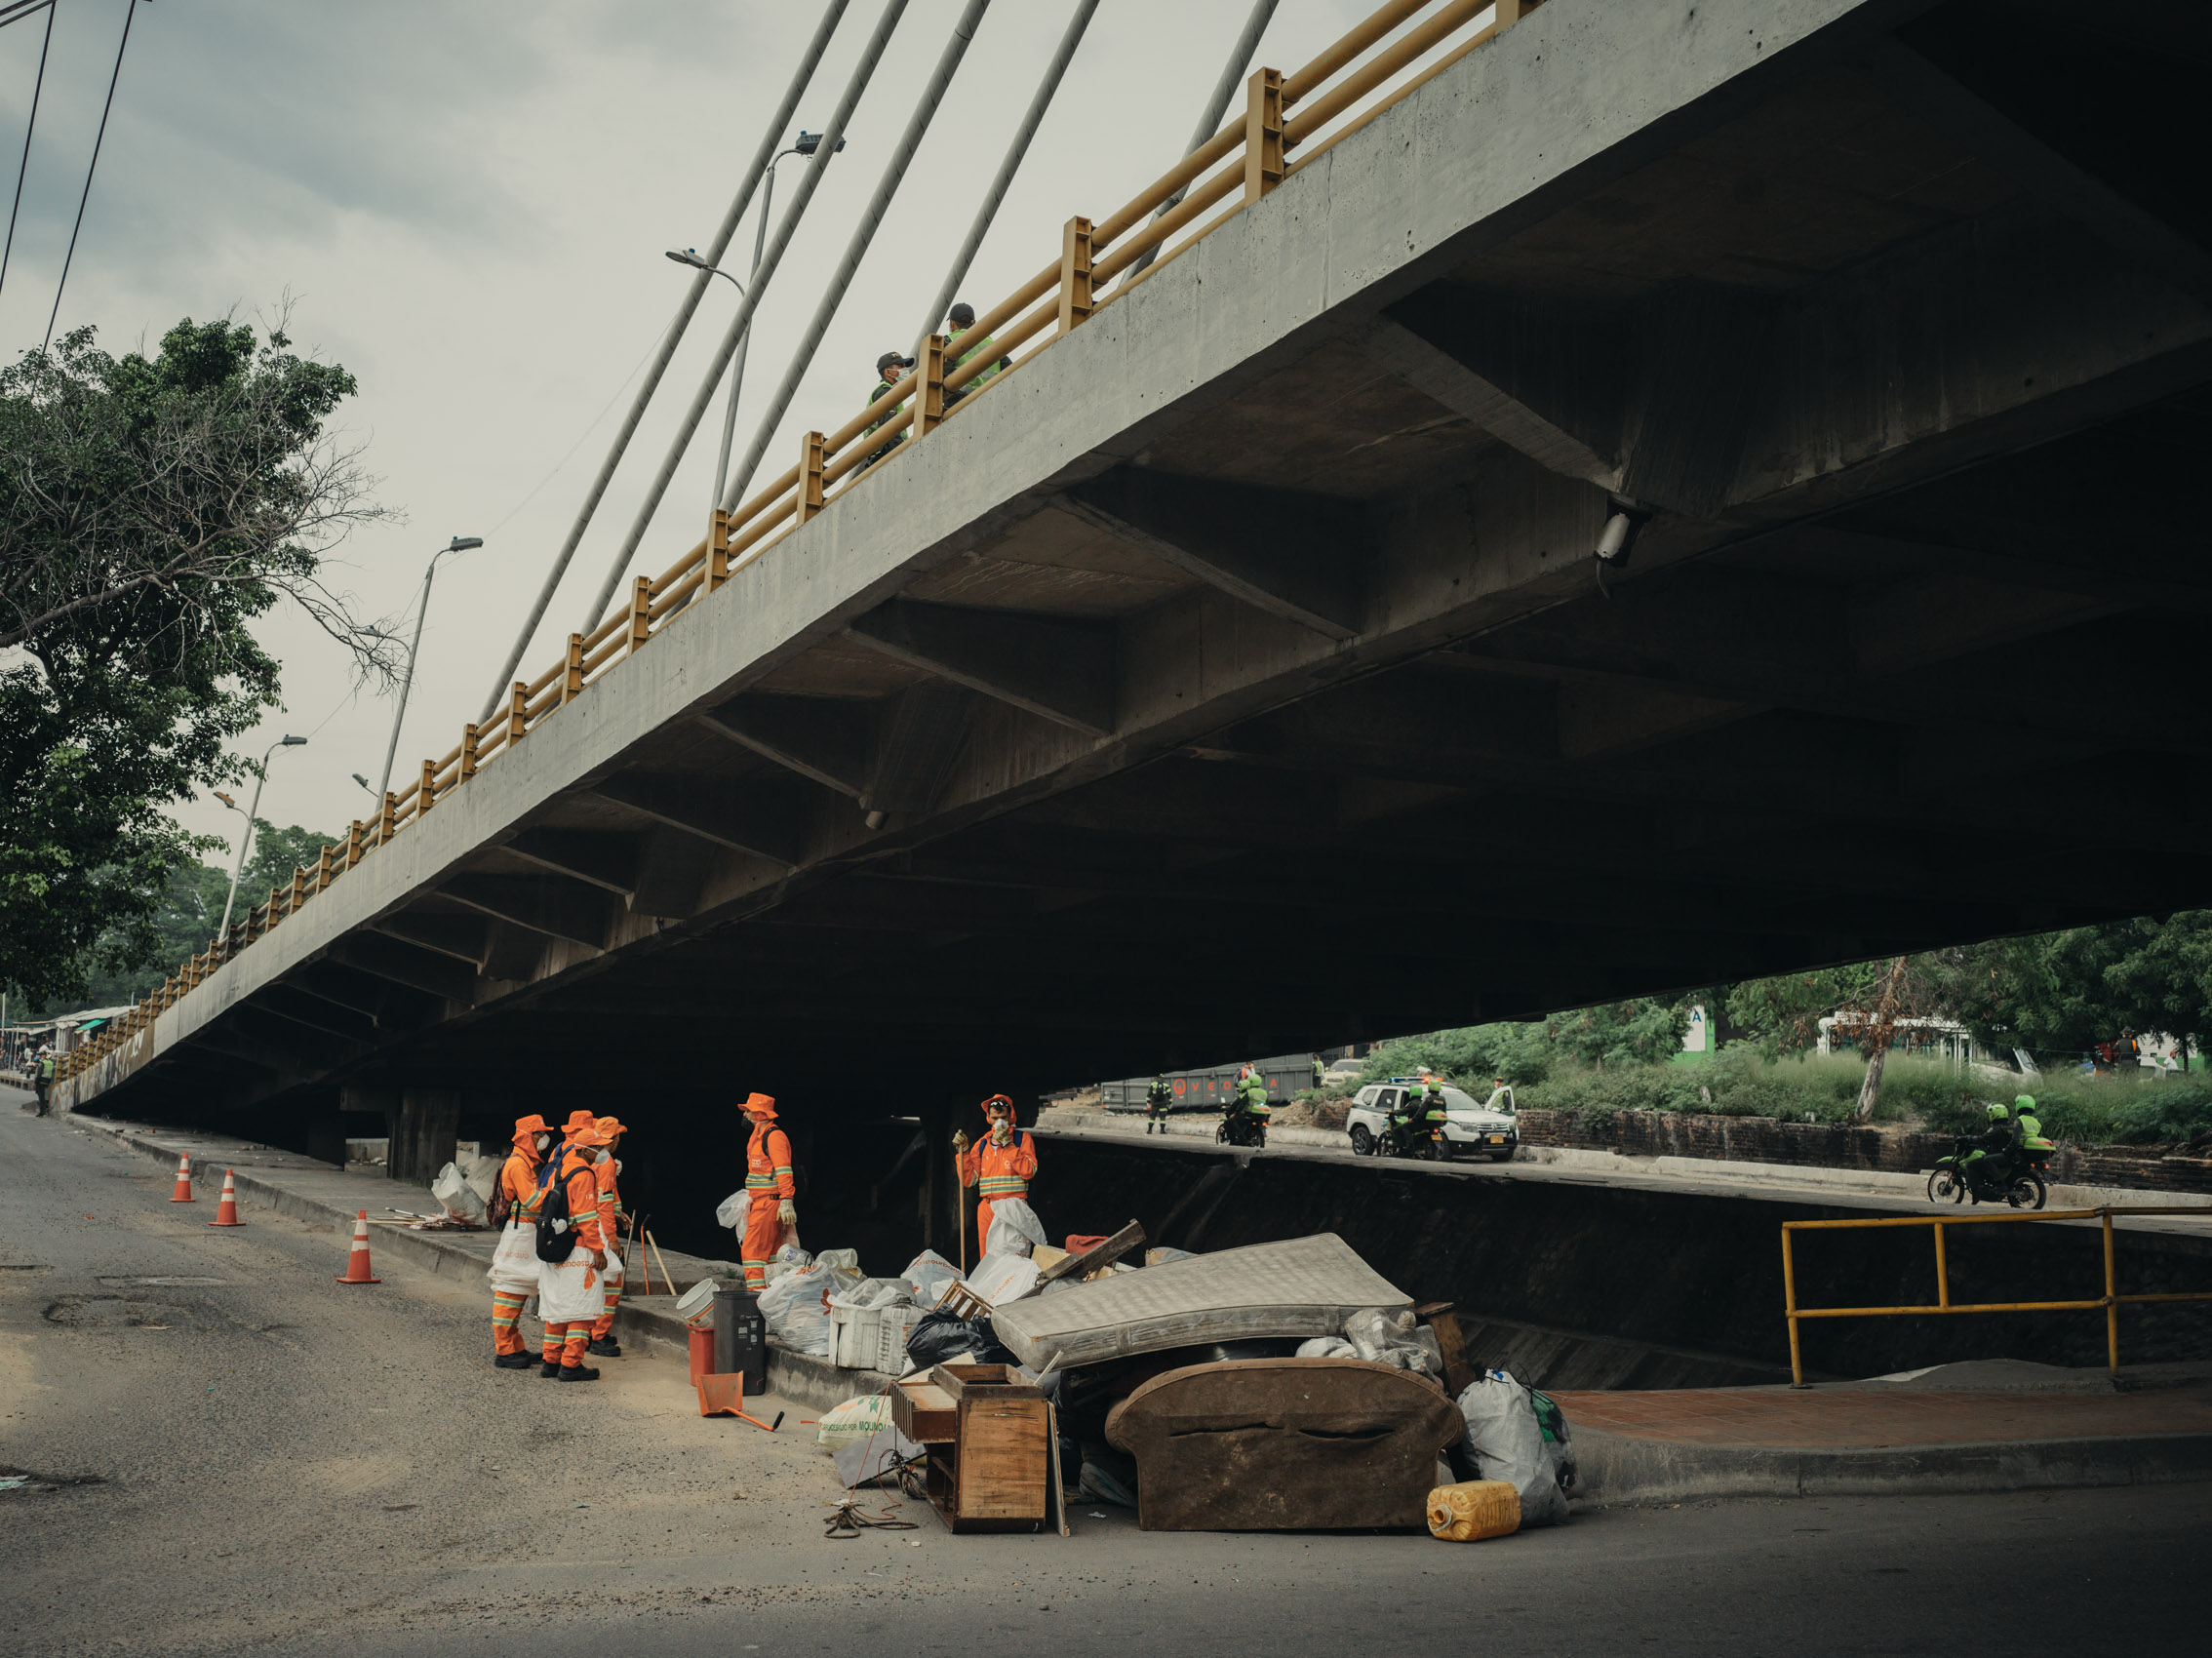 Trash cleanup under bridge in Colombia